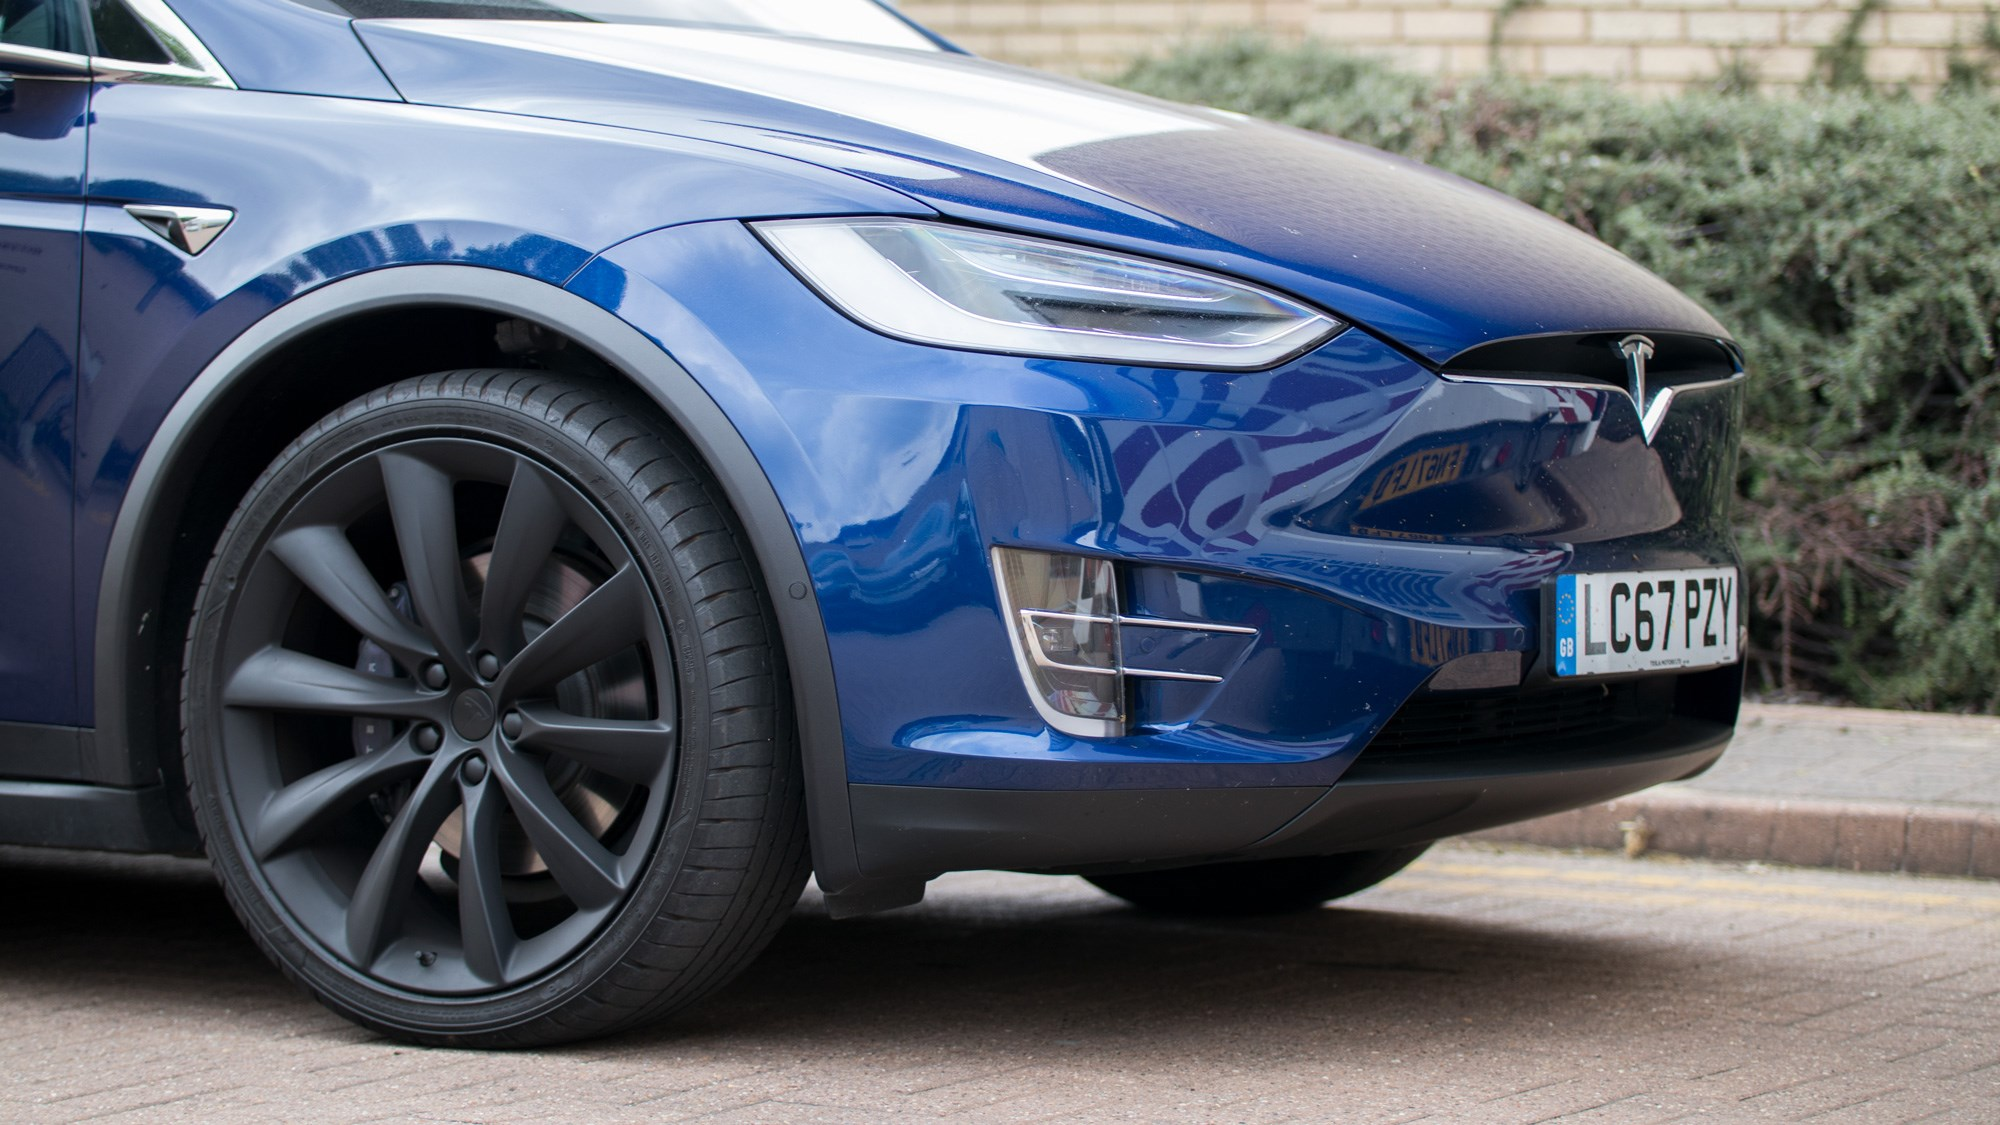 Tesla Model X - front wheel and grille-less face